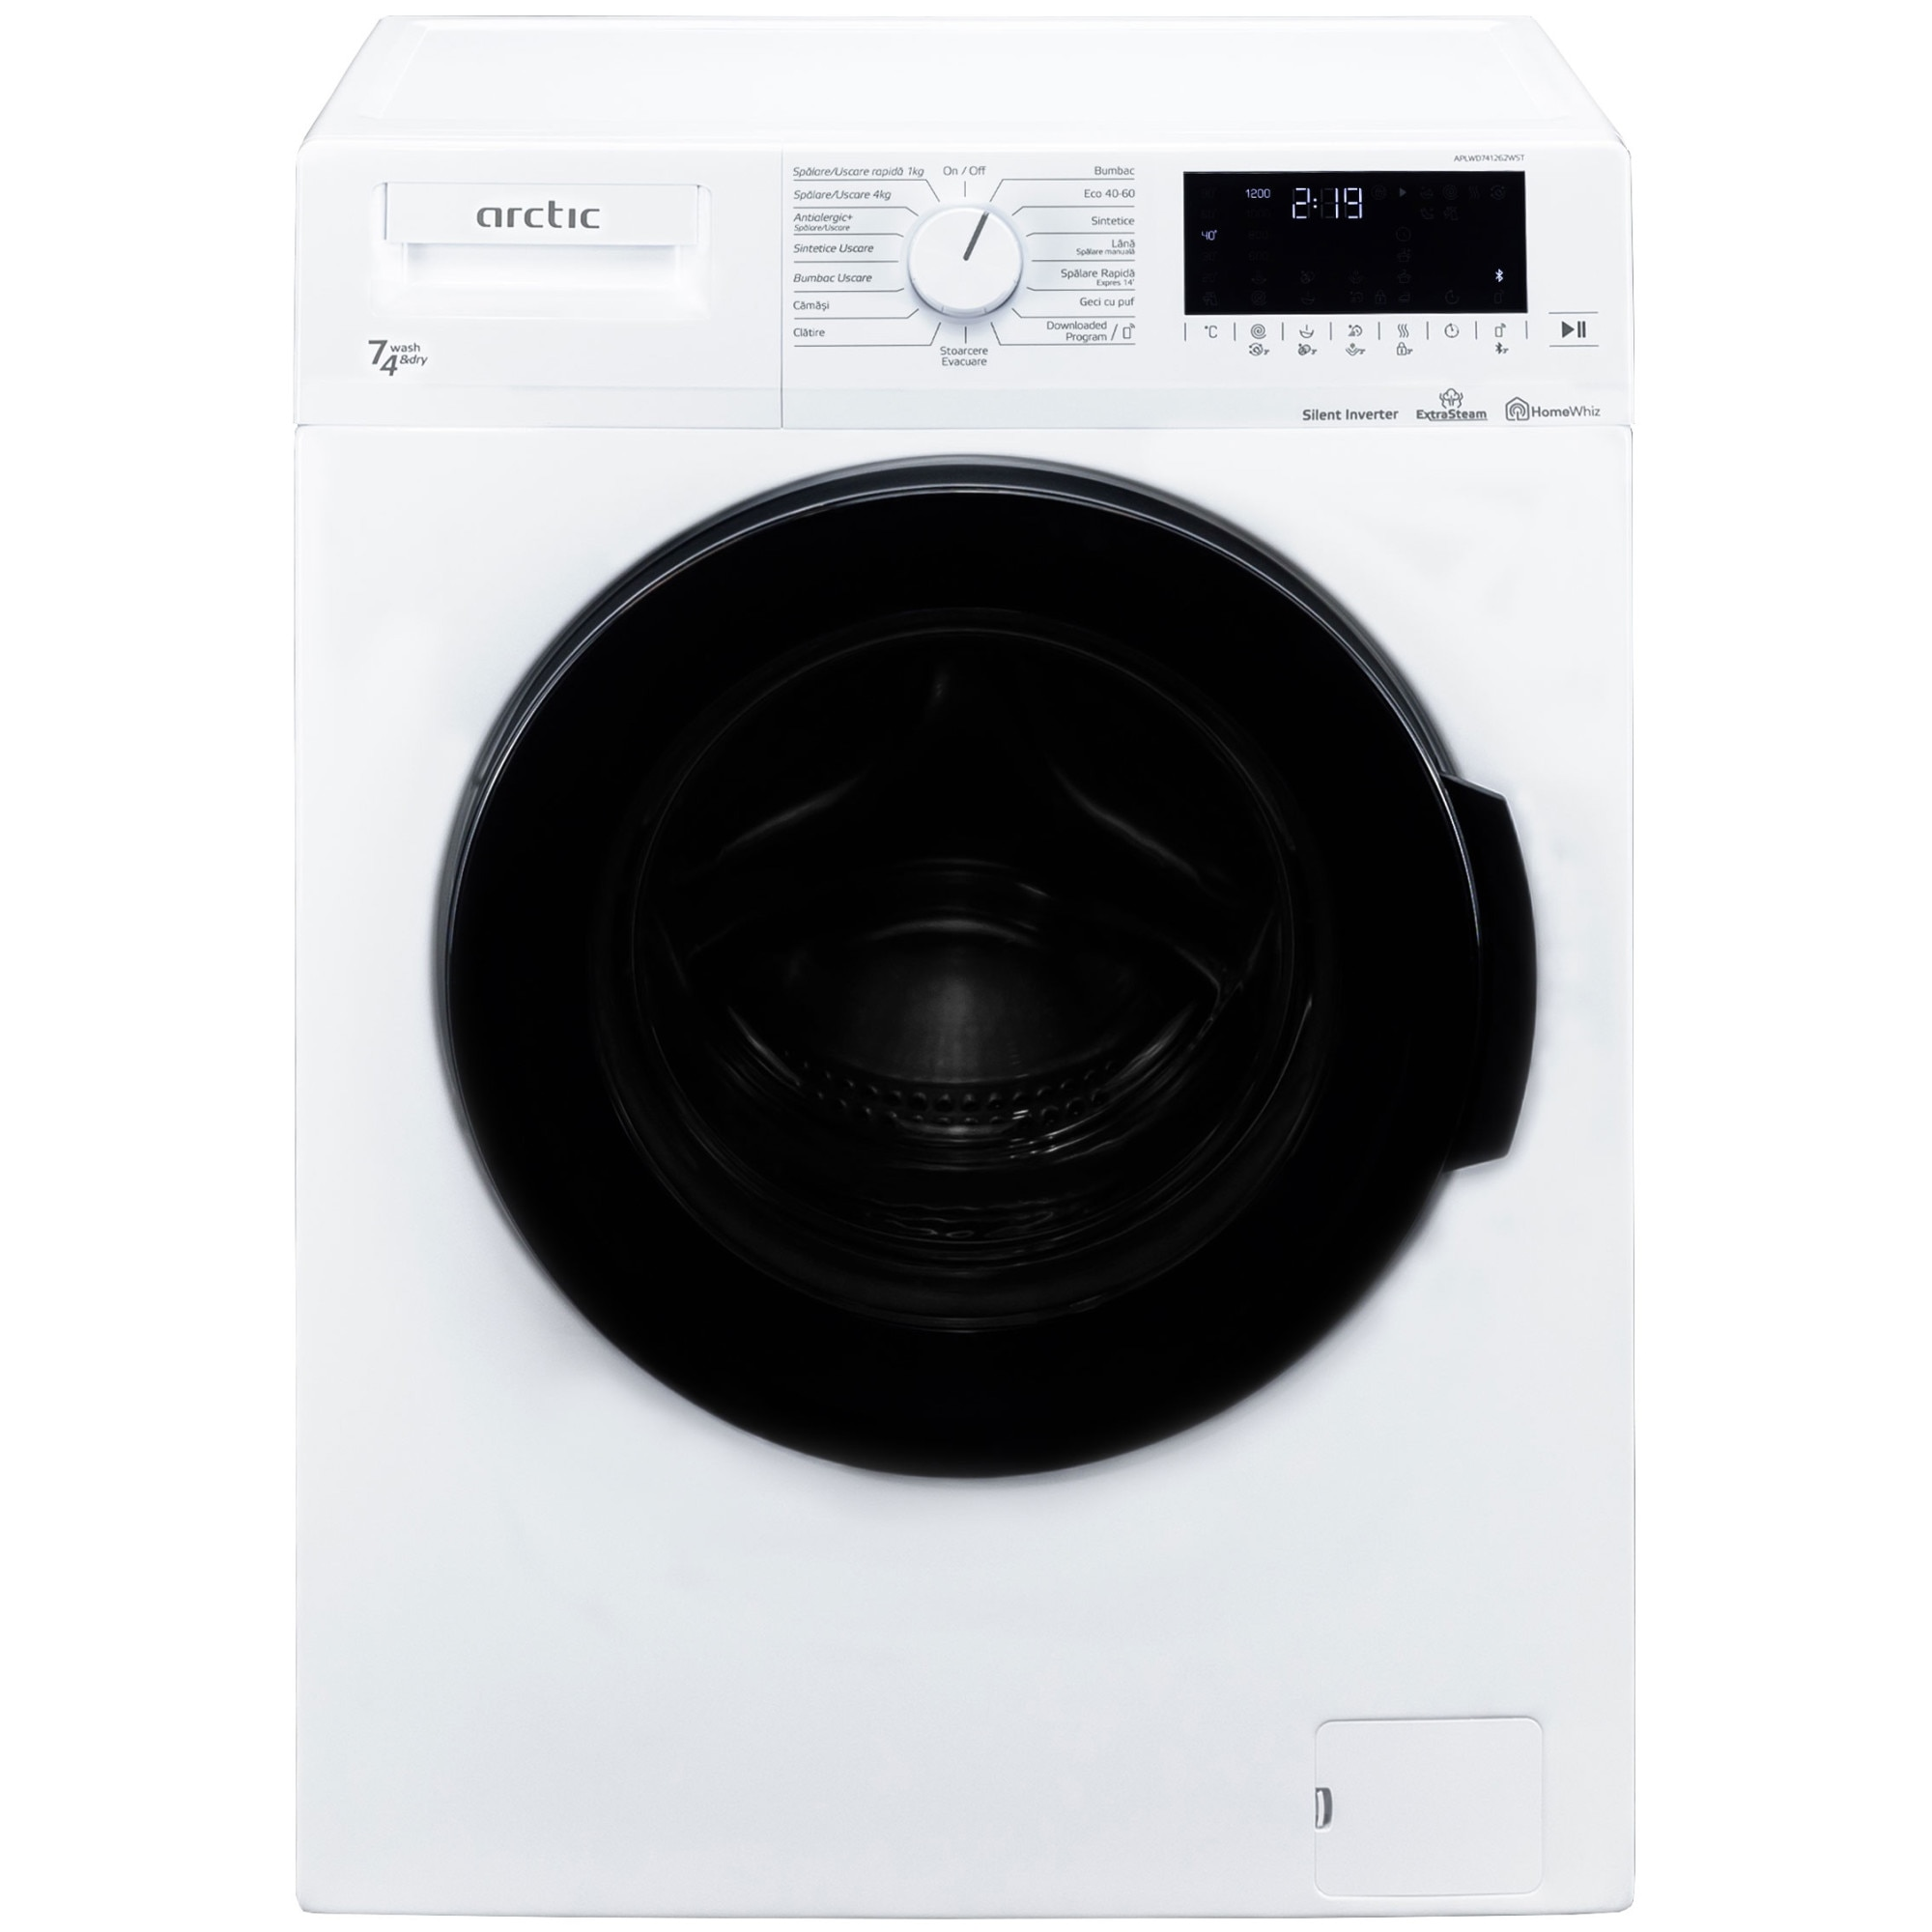 Fotografie Masina de spalat rufe cu uscator Arctic APLWD741262WST, Spalare 7 kg, Uscare 4 kg, 1200 rpm, Clasa B, Motor Silent Inverter, HomeWhiz, Conectare Bluetooth, ExtraSteam, Downloaded Program, Alb